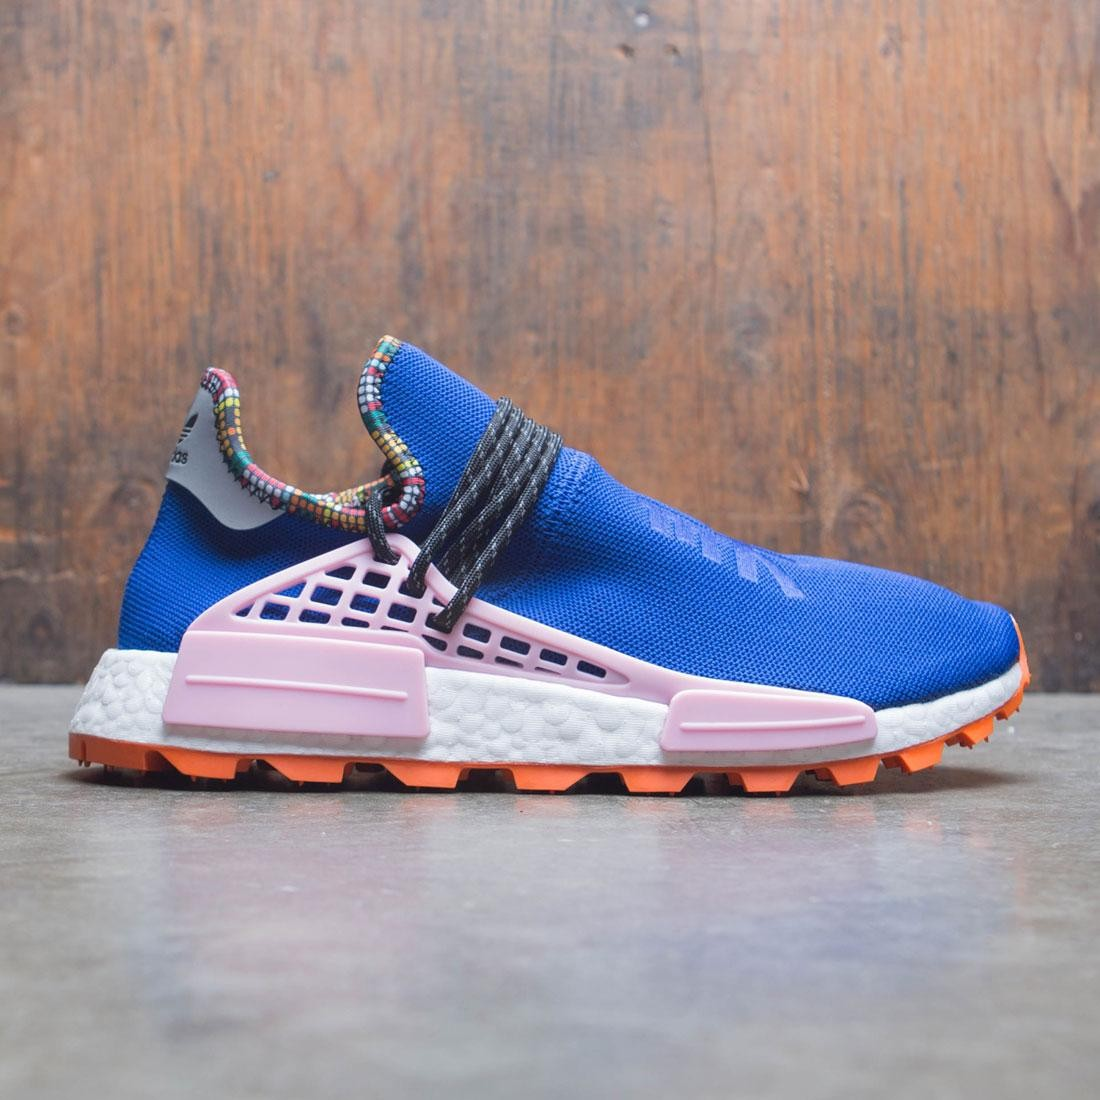 new arrival 798e3 8c394 Adidas x Pharrell Williams Men Solar HU NMD (blue / powder blue / light  pink / orange)